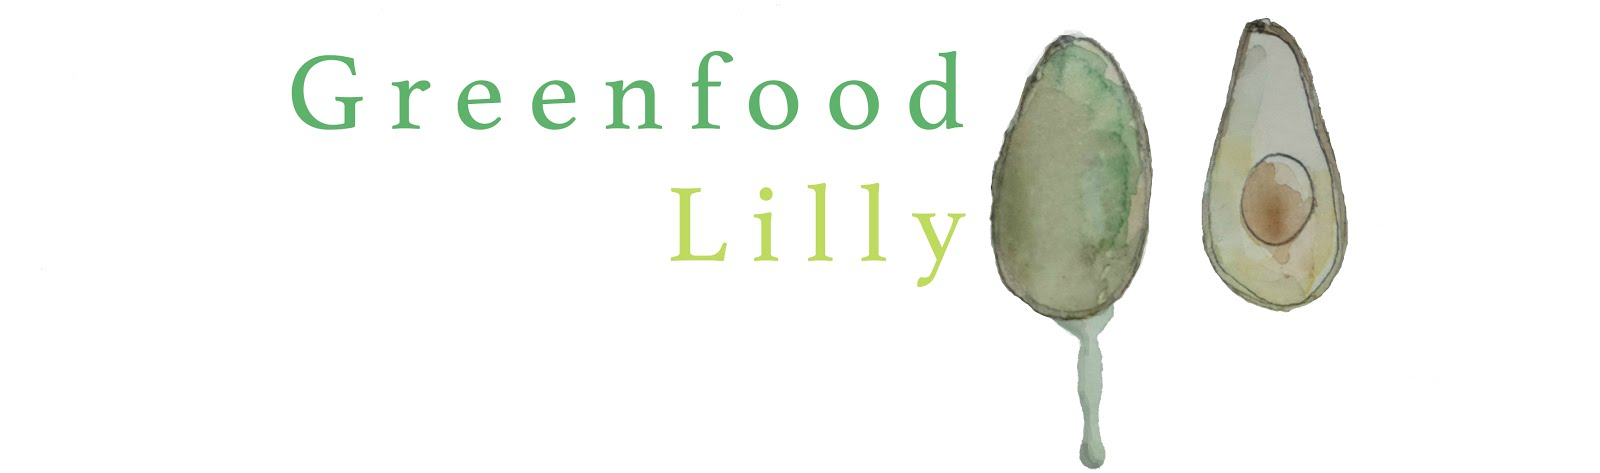 GREENFOOD LILLY